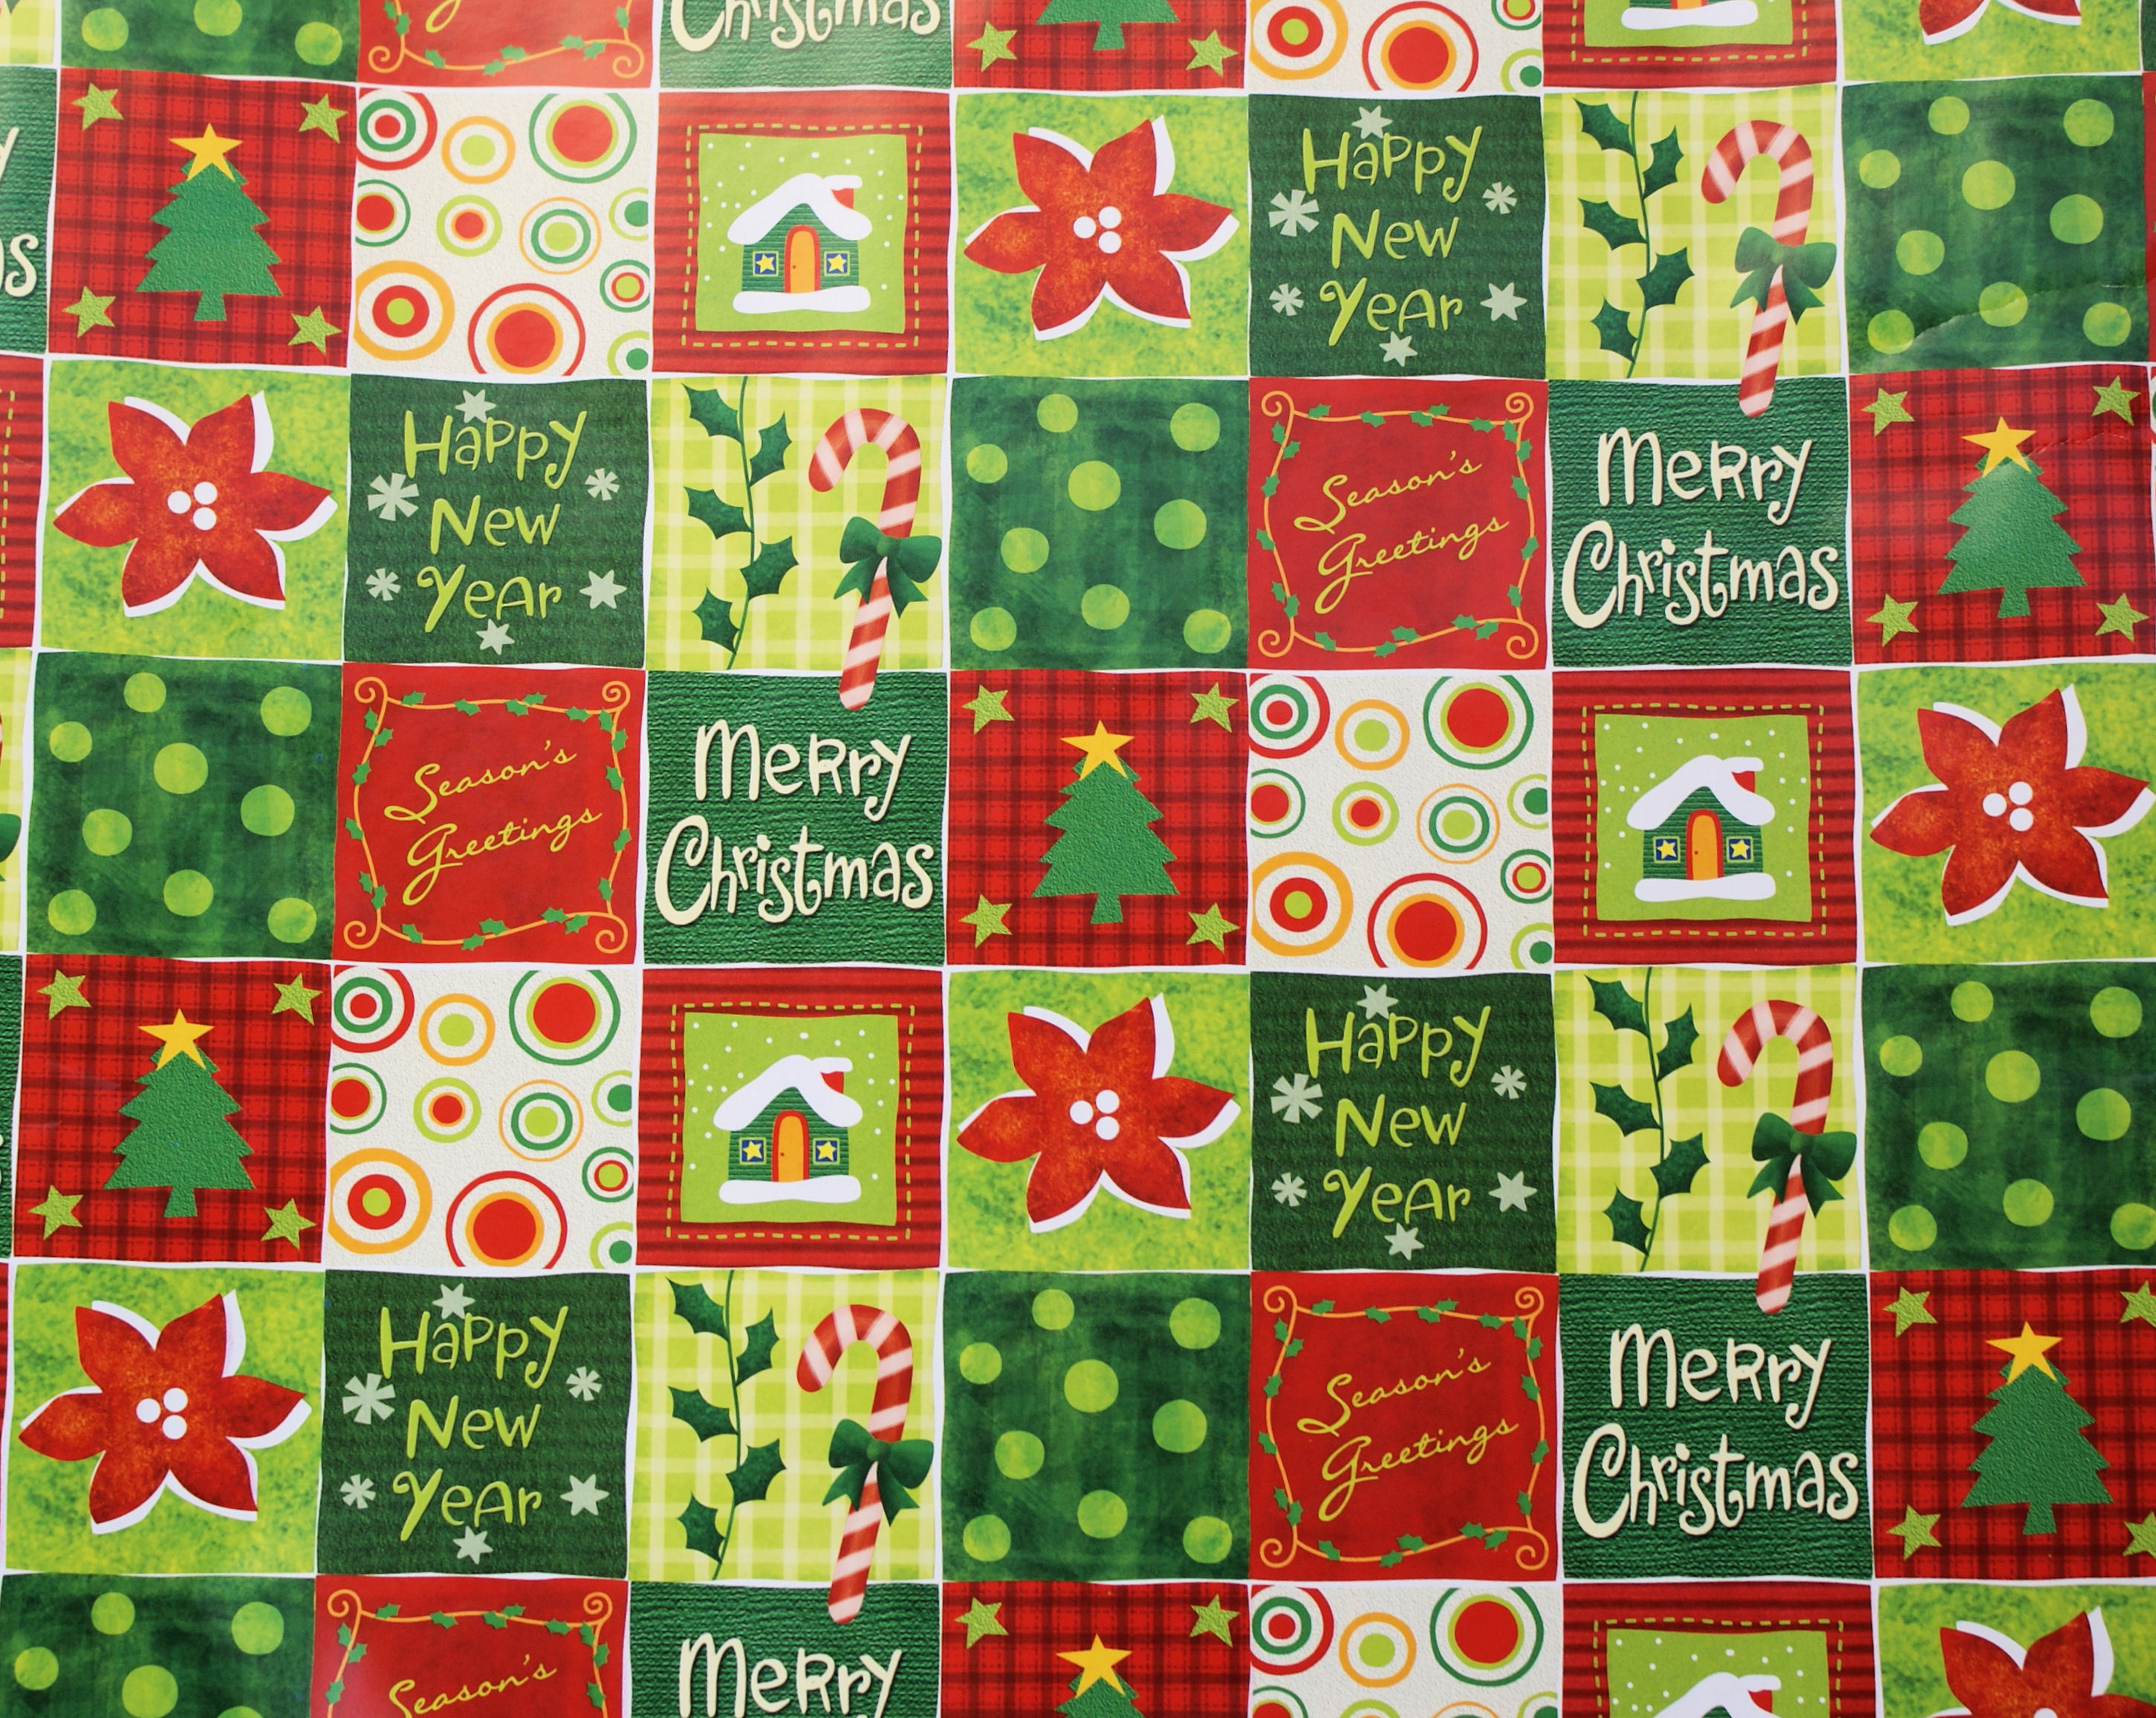 christmas wrapping paper example 1 christmas wrapping paper example 2 - Christmas Paper